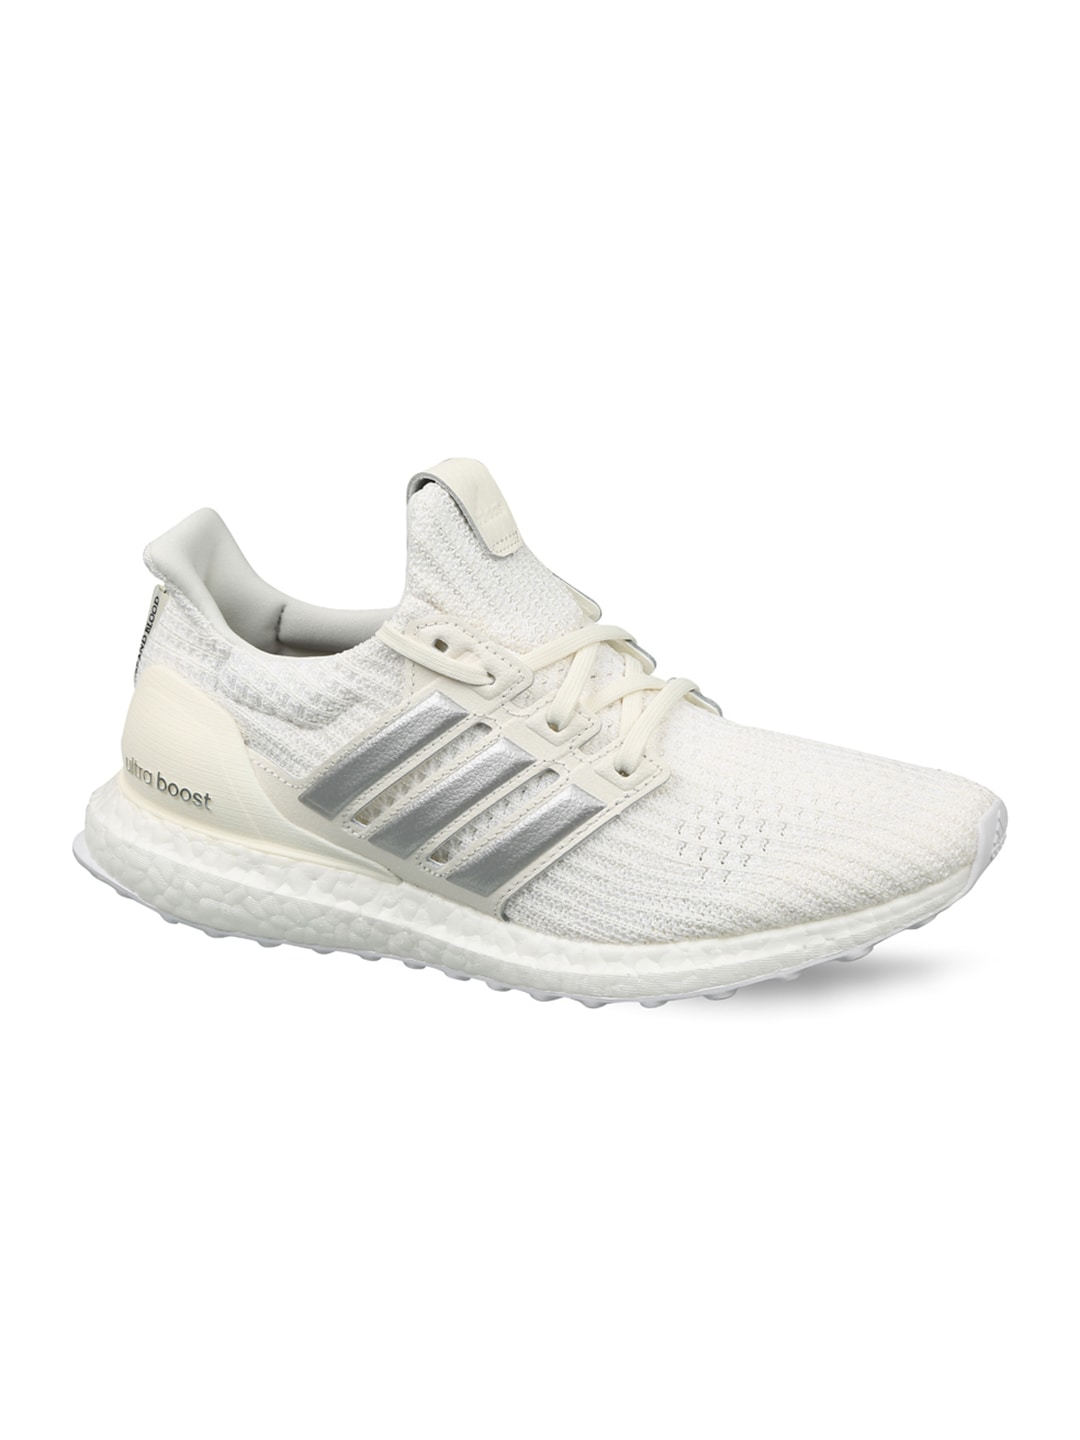 45a18aa900a Adidas Shoes - Buy Adidas Shoes for Men   Women Online - Myntra